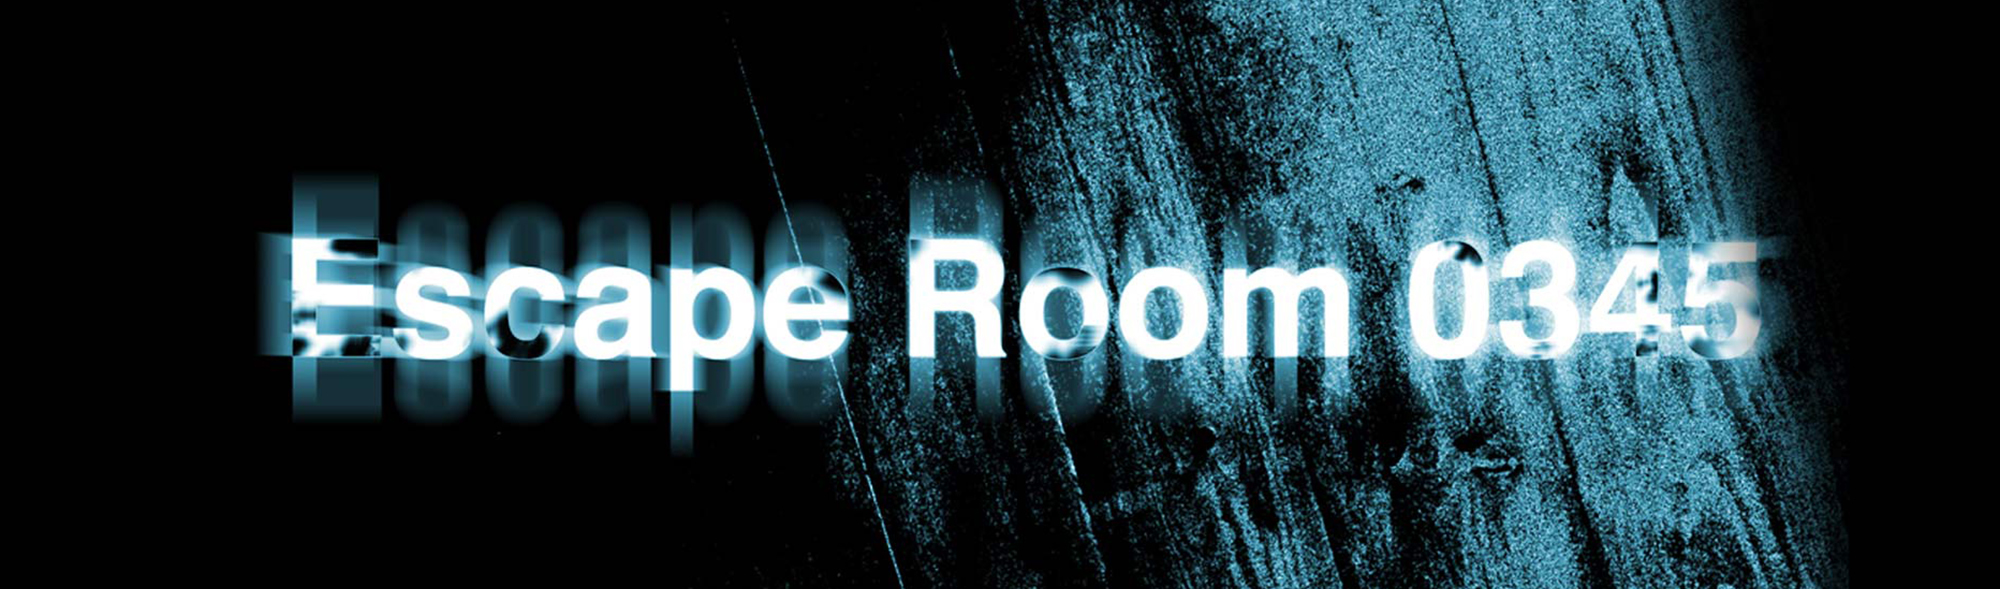 header-escape-room-3.jpg